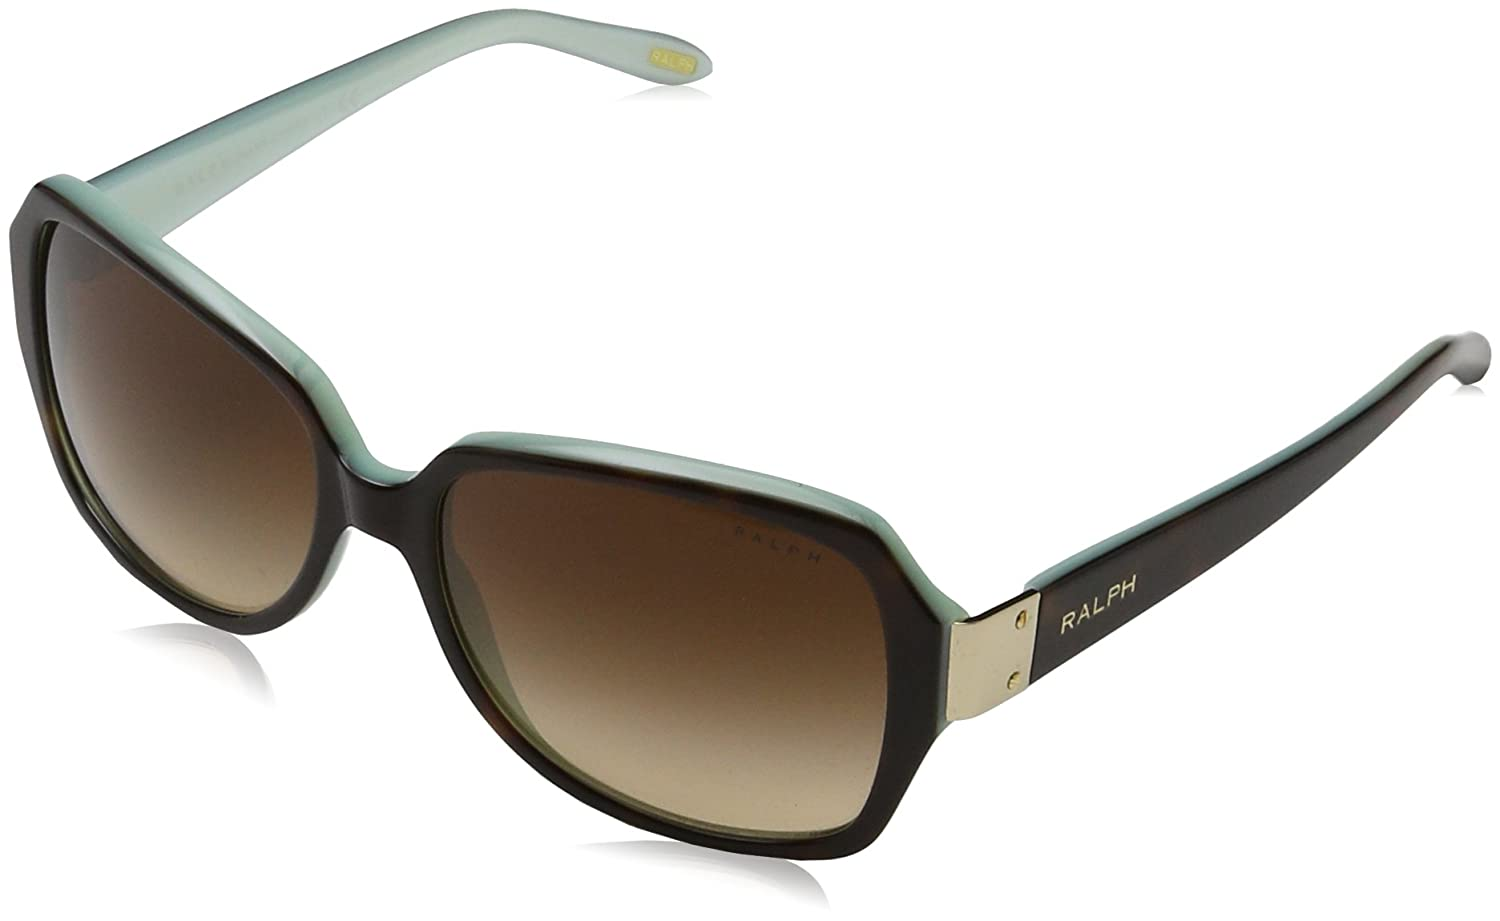 471ded362f07 Amazon.com: Ralph by Ralph Lauren Women's 0ra5138 Square Sunglasses,  TORTOISE/TURQUOISE, 58.0 mm: Ralph: Clothing